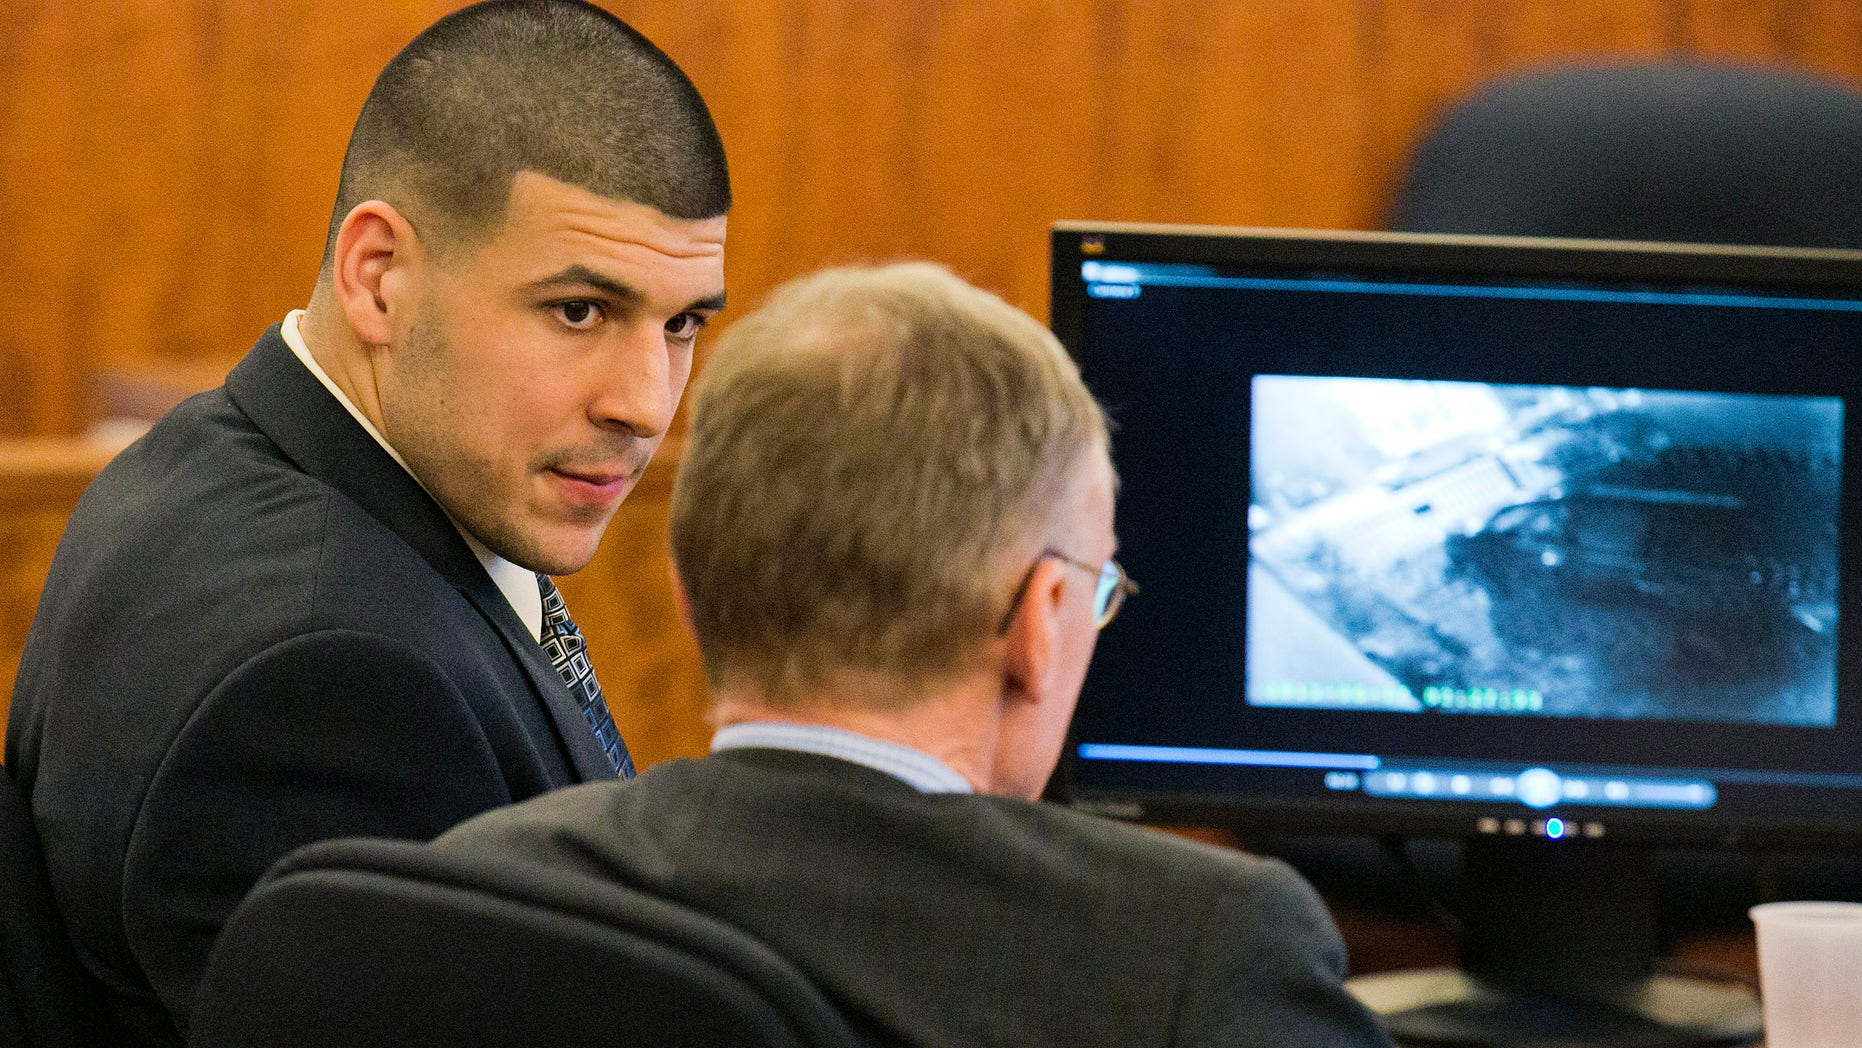 Former NFL player Aaron Hernandez looks at his attorney as security footage is seen on a monitor during his murder trial at the Bristol County Superior Court in Fall River, Mass.,  Friday, Feb. 20, 2015.  Grainy surveillance video shown to jurors in the murder trial of Hernandez on Friday shows the victim an hour before he was killed climbing into a car that prosecutors say was driven by Hernandez. (AP Photo/The Boston Herald, Dominick Reuter)